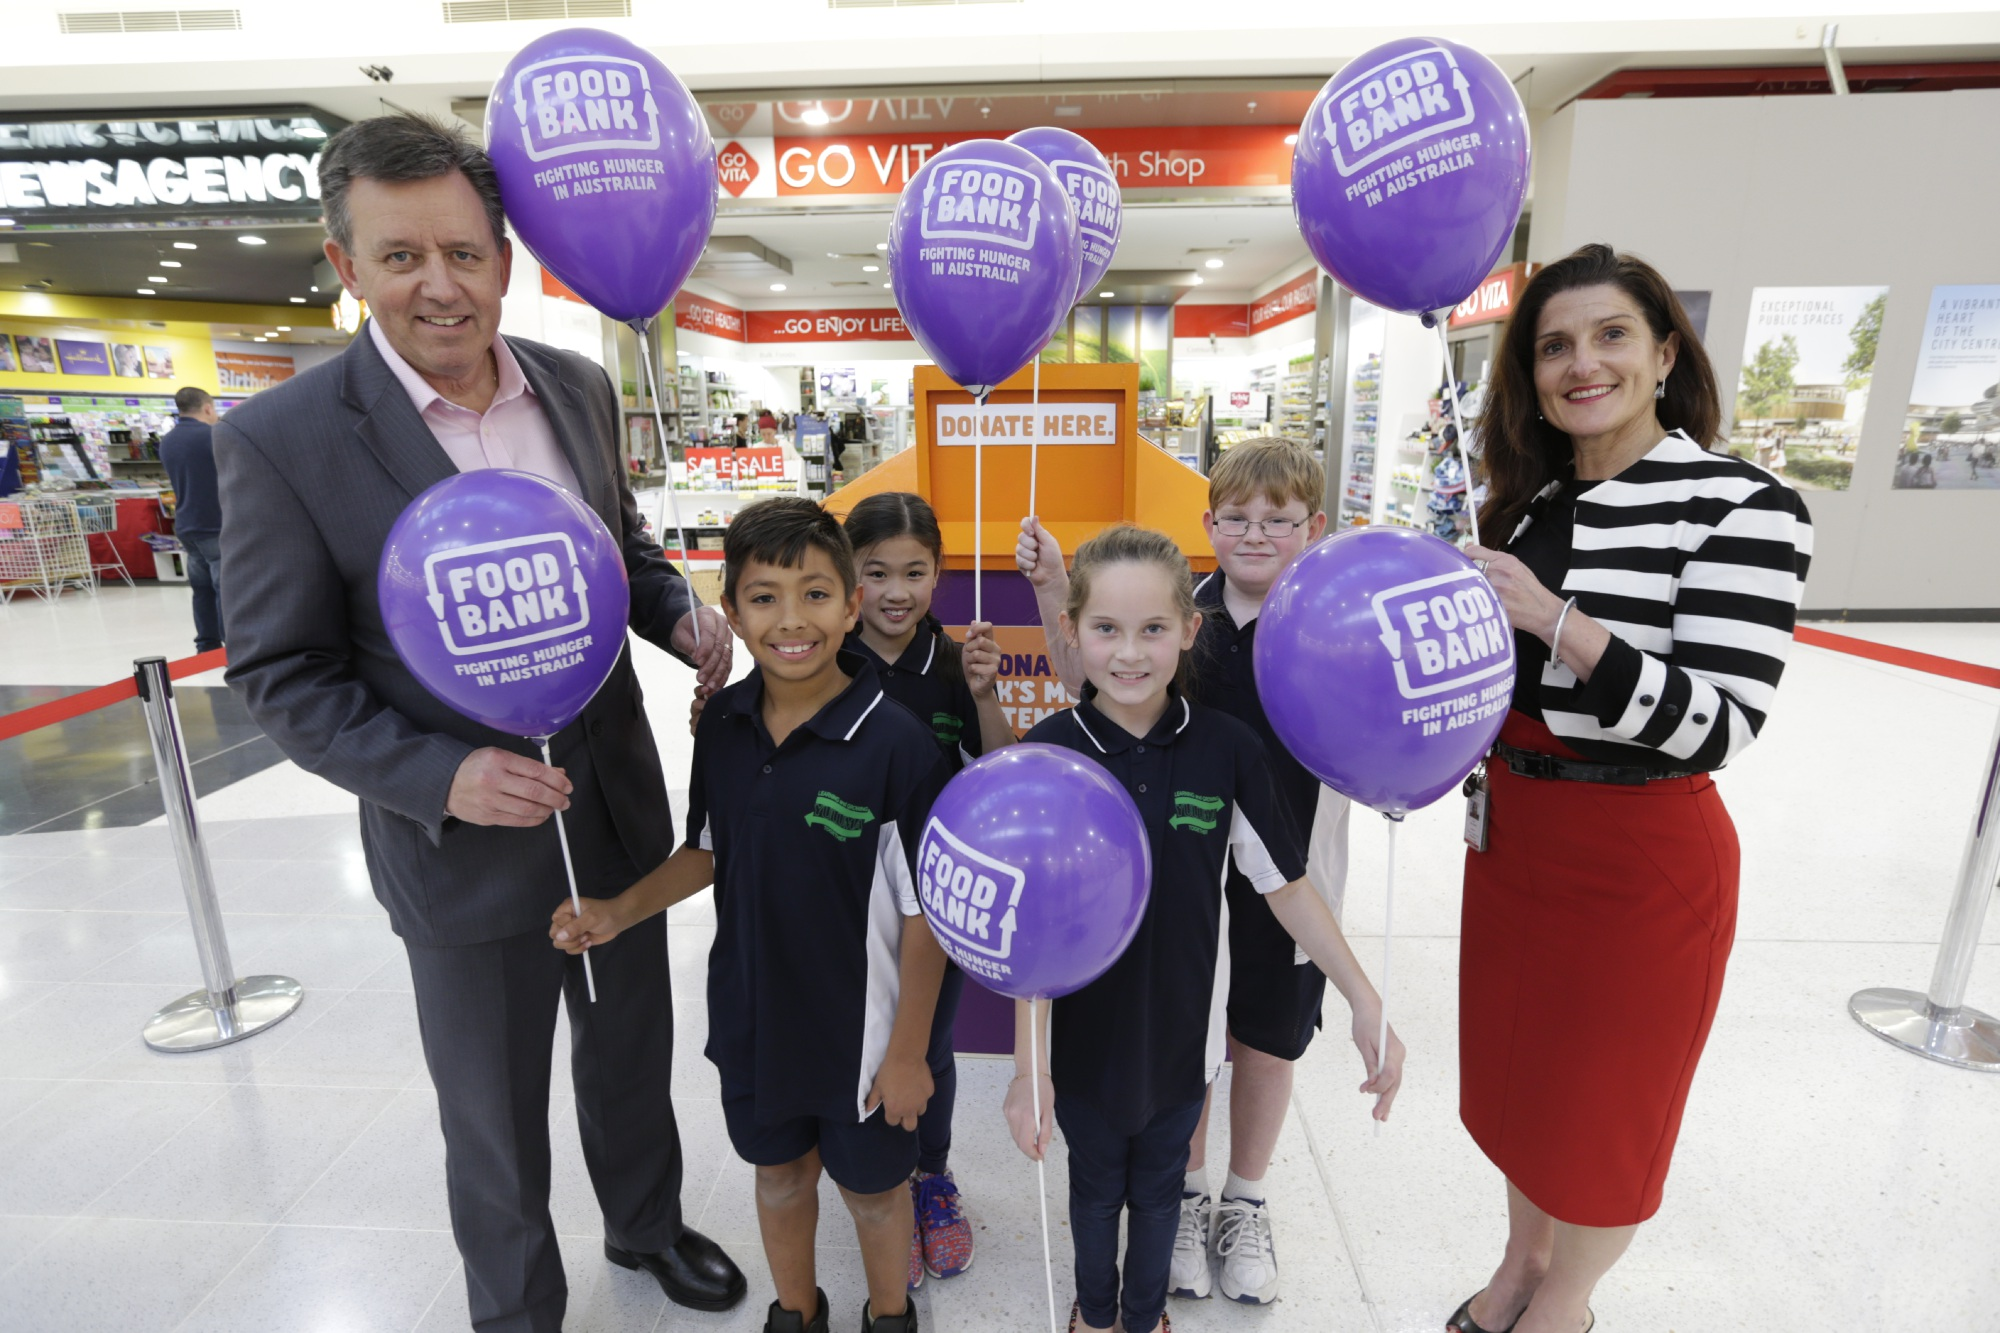 Foodbank WA CEO Greg Hebble with Yuluma Primary School students Amar Marmanillo (Year 4), Janelle Ong (Year 5), Ella Manning (Year 4) and Mark Van Derdetten (Year 5). Westfield Innaloo centre manager Mary Del Dosso is on the right. Picture: Andrew Ritchie.